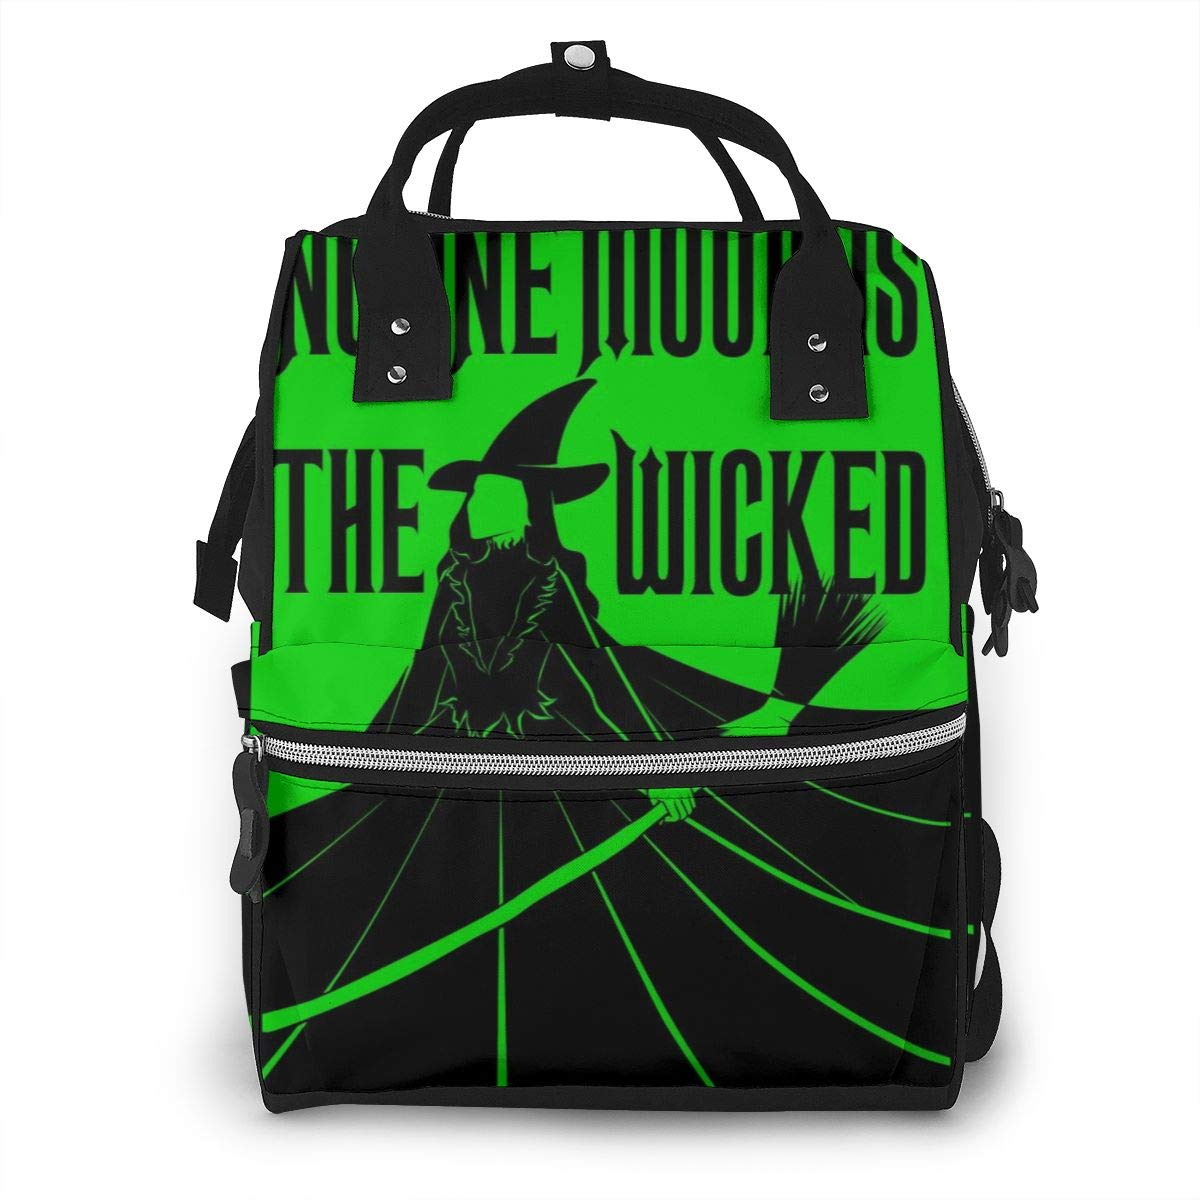 Wicked The Musical Diaper Bag Multi-Function Waterproof Travel Backpack Nappy Bags for Baby Care Mummy Backpack